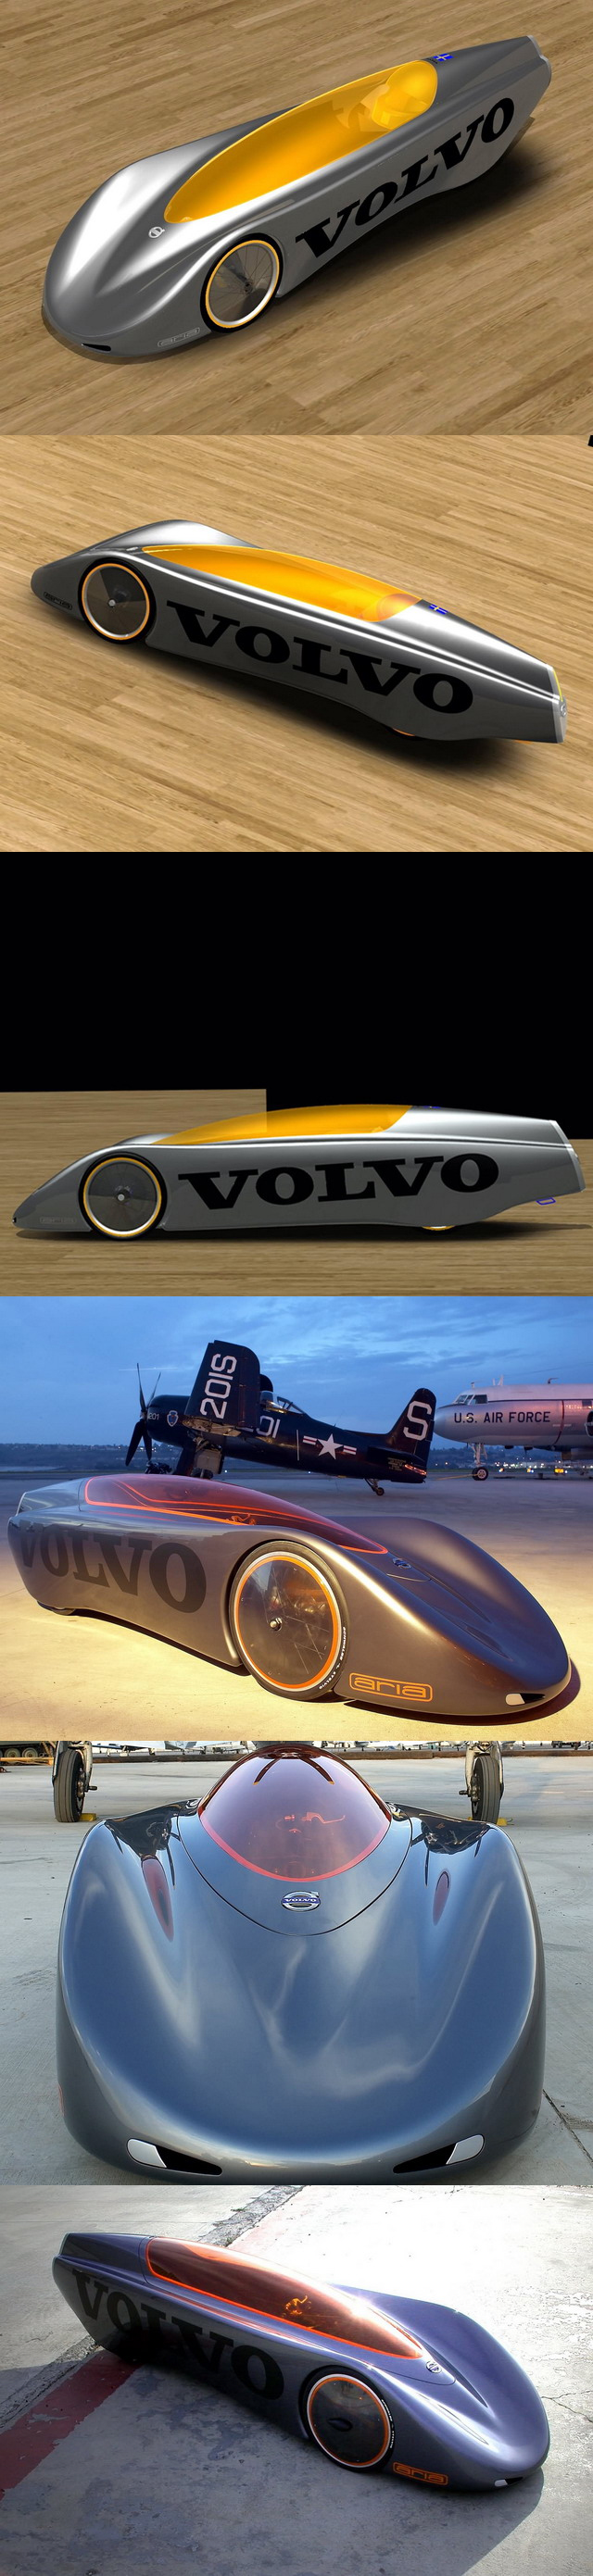 Ee Concept volvo gravity car concept 2005 from http conceptcar